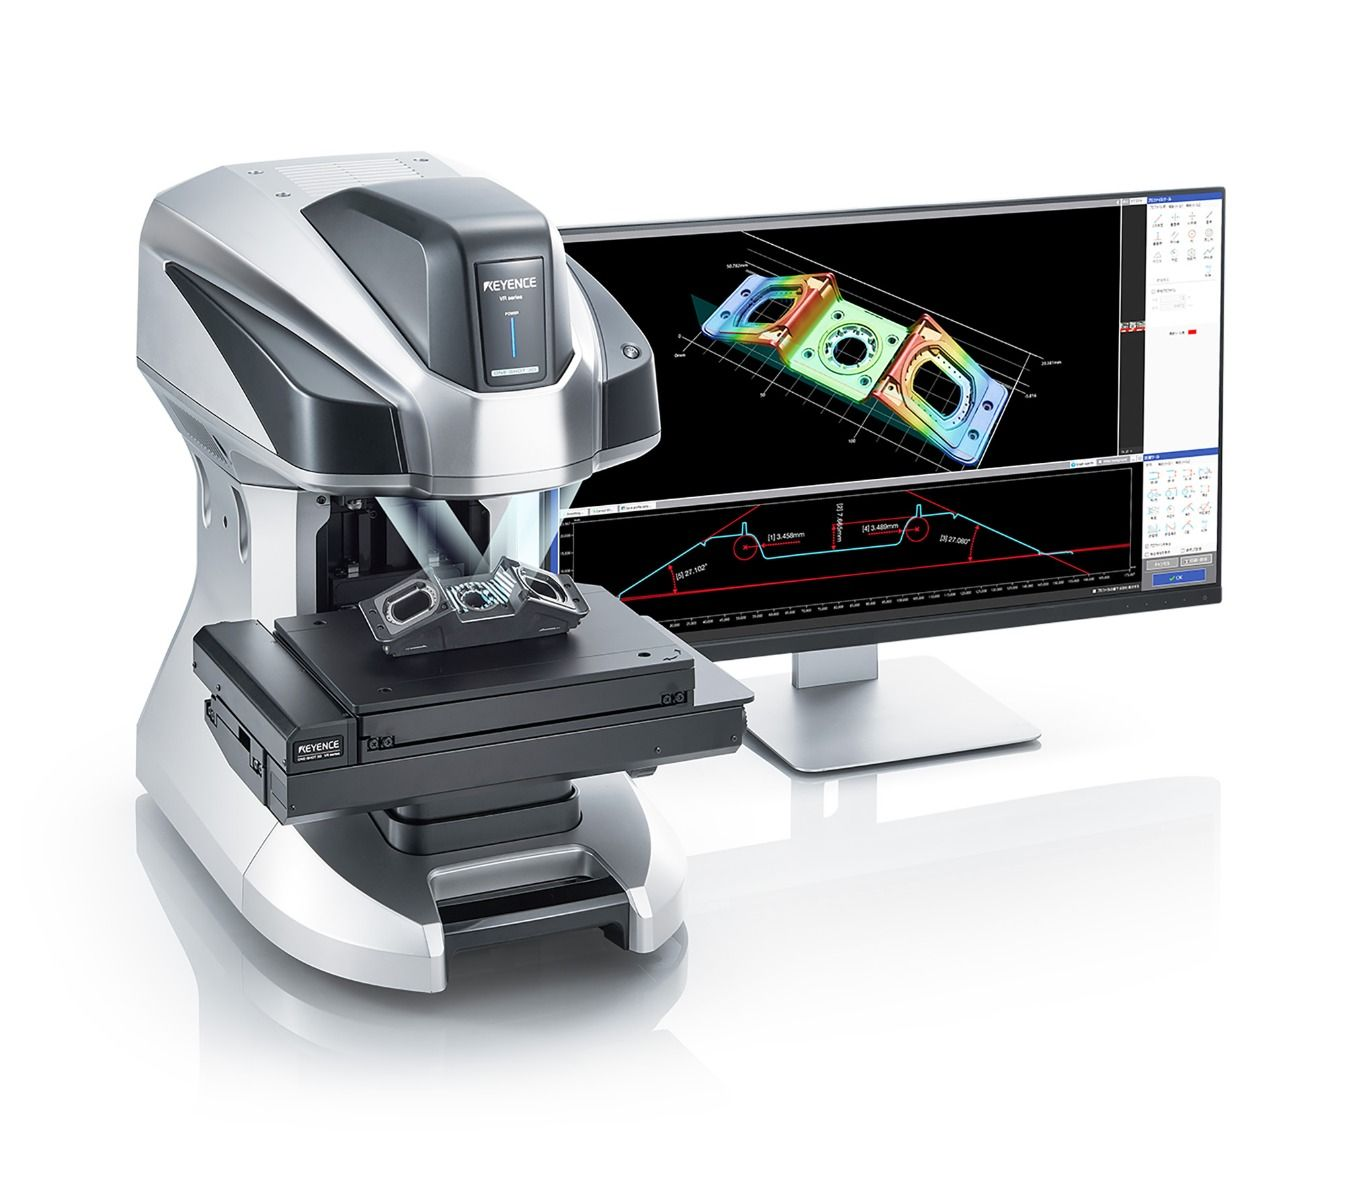 KEYENCE NEW Wide-Area 3D Measurement System VR-5000 Series